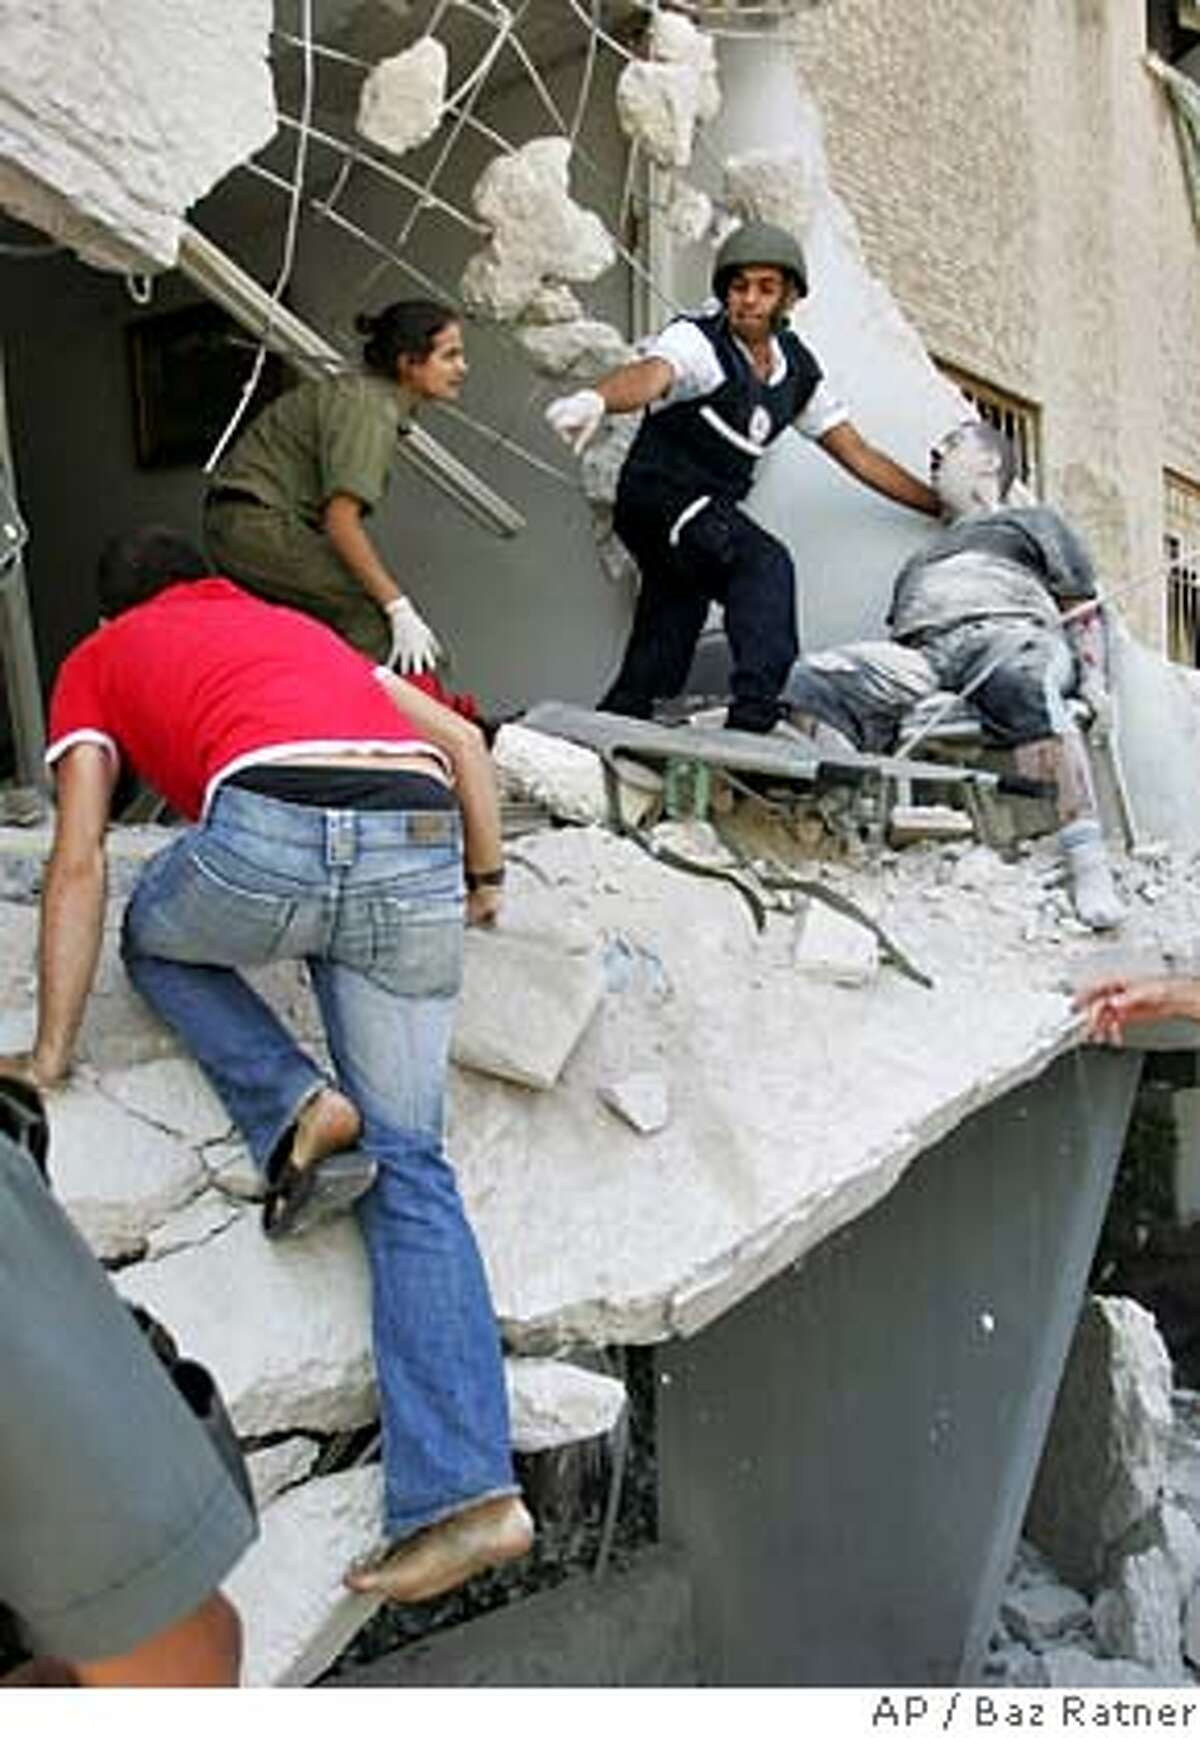 ** RETRANSMISSION FOR ALTERNATE CROP ** Rescue workers evacuate a seriously wounded man from a building directly hit by a rocket fired from Lebanon in the northern Israeli city of Haifa, Monday July 17, 2006. Hezbollah guerrillas fired several volleys of rockets at the city of Haifa on Monday, destroying a three-story building and wounding at least three people, Israeli medics said. (AP Photo/Baz Ratner)